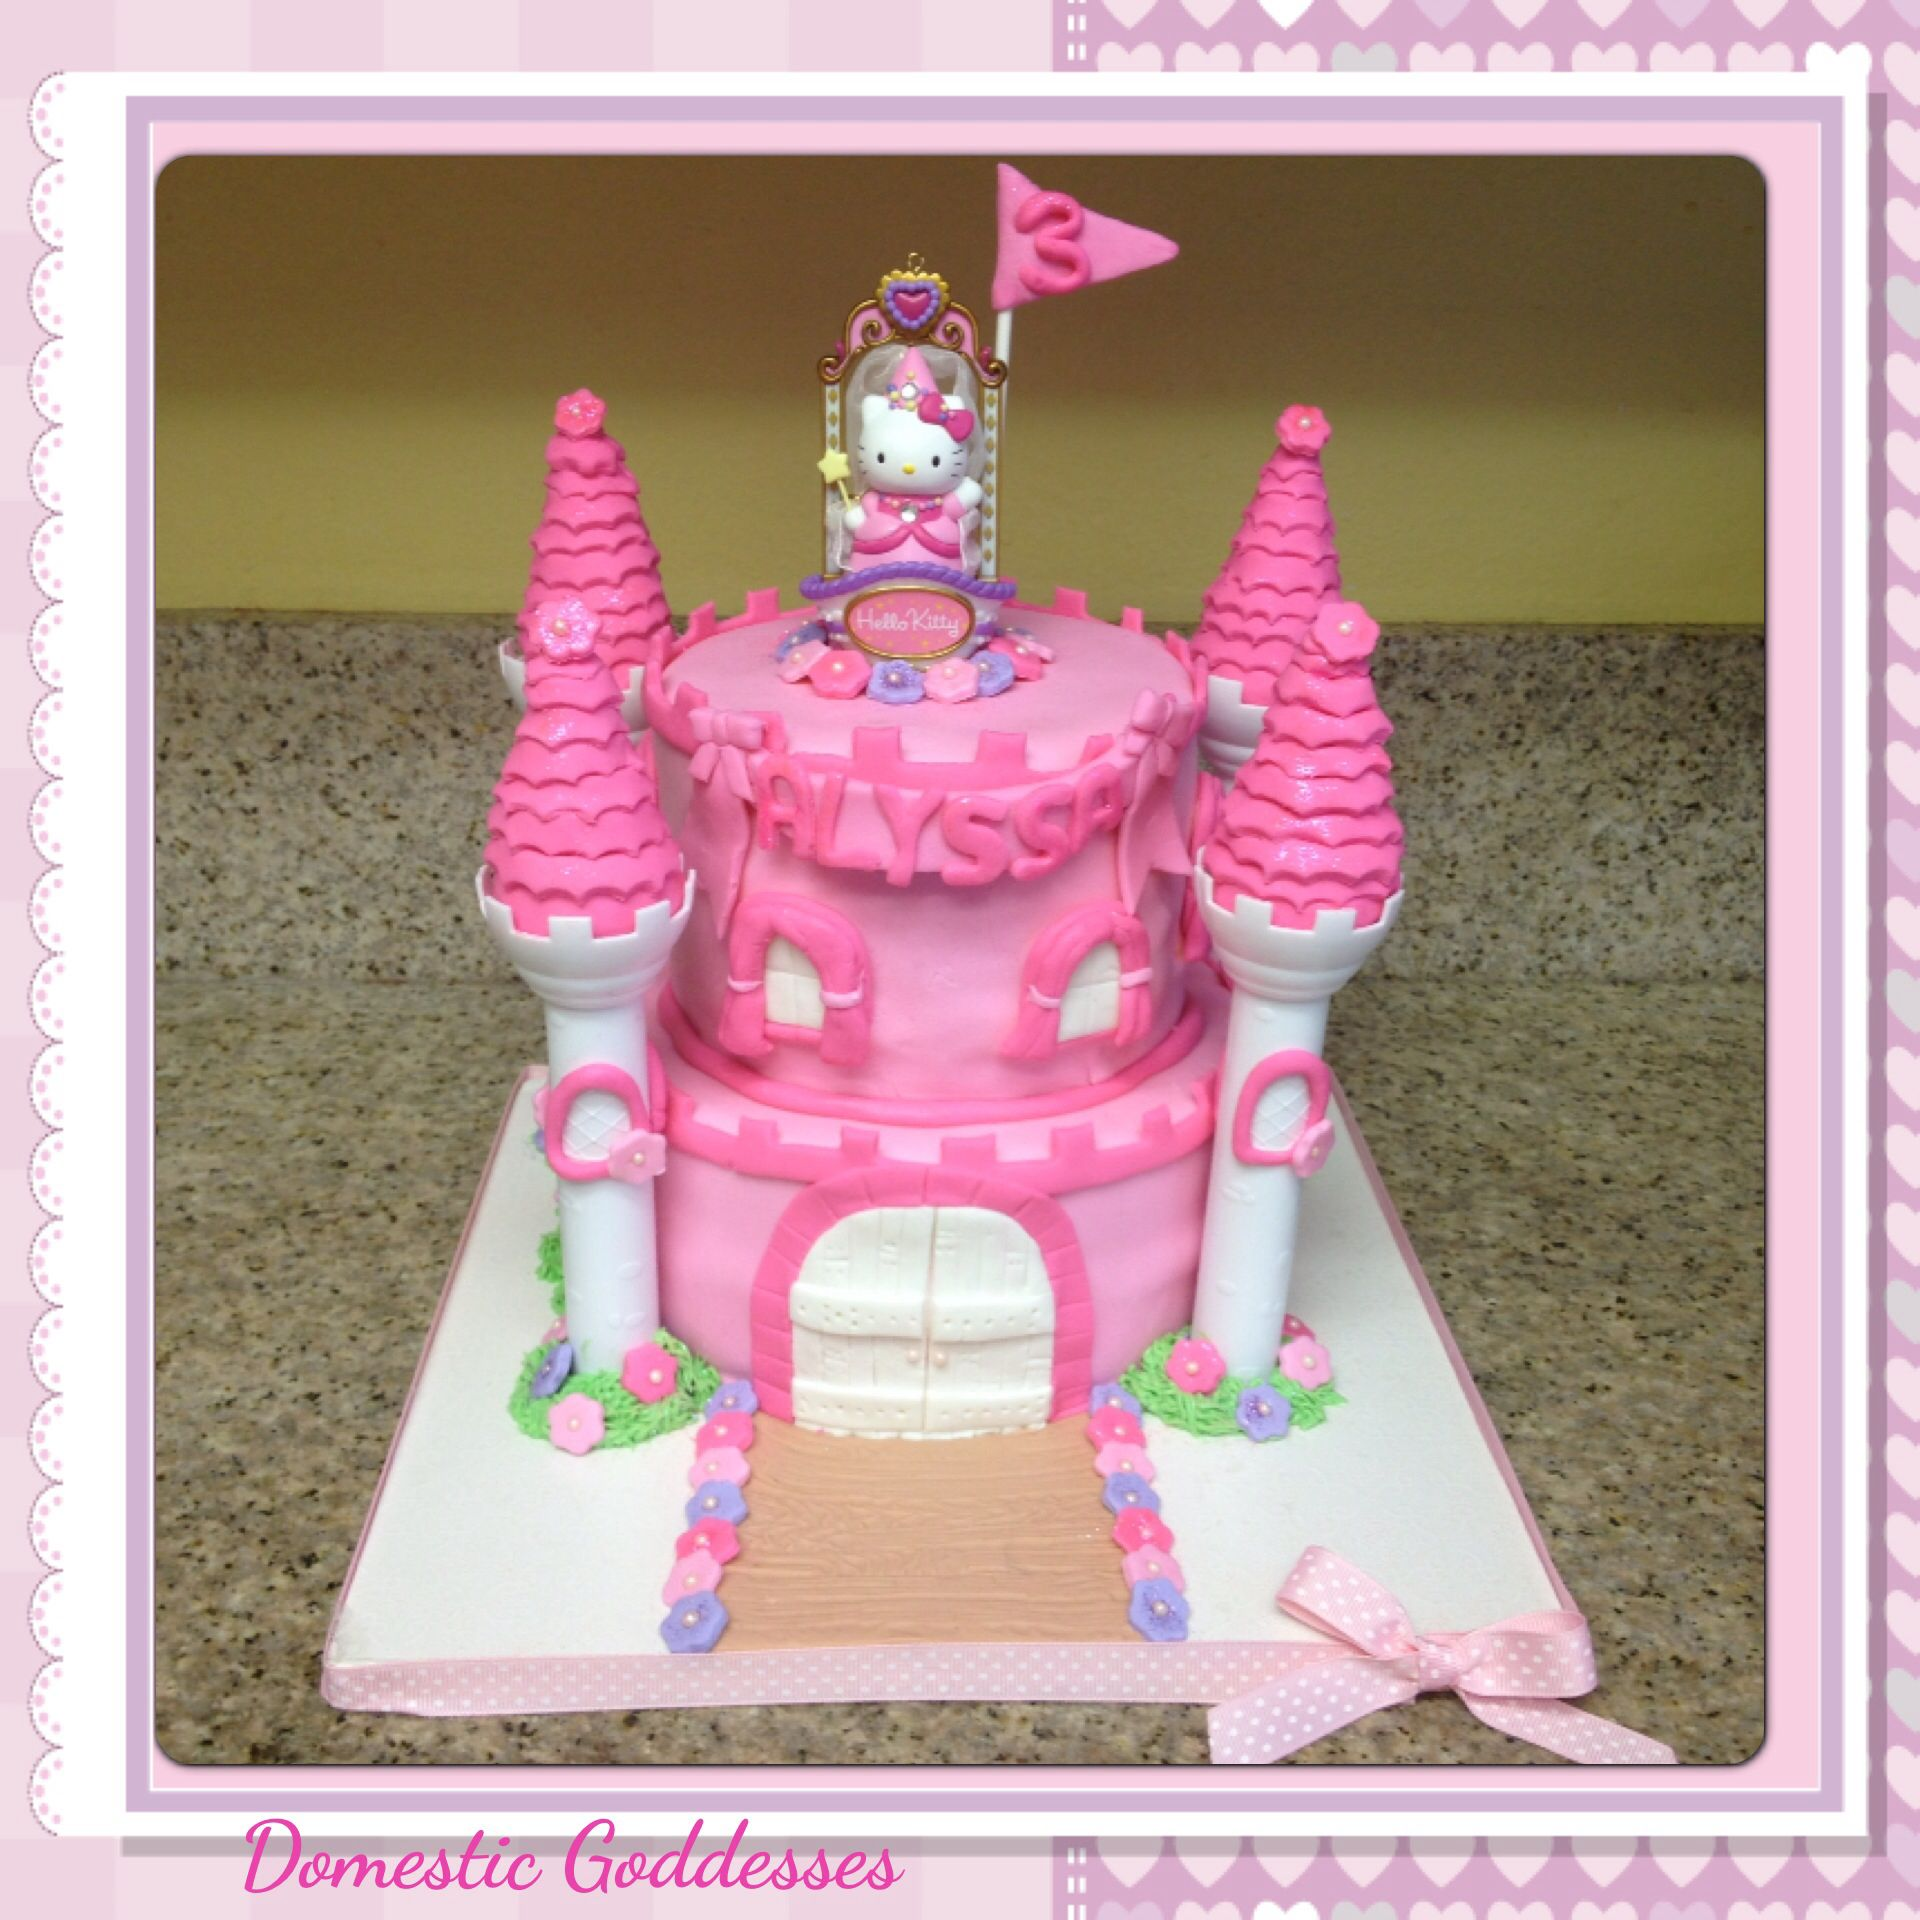 Castle cake Princess Hello Kitty (With images) | Princess ...